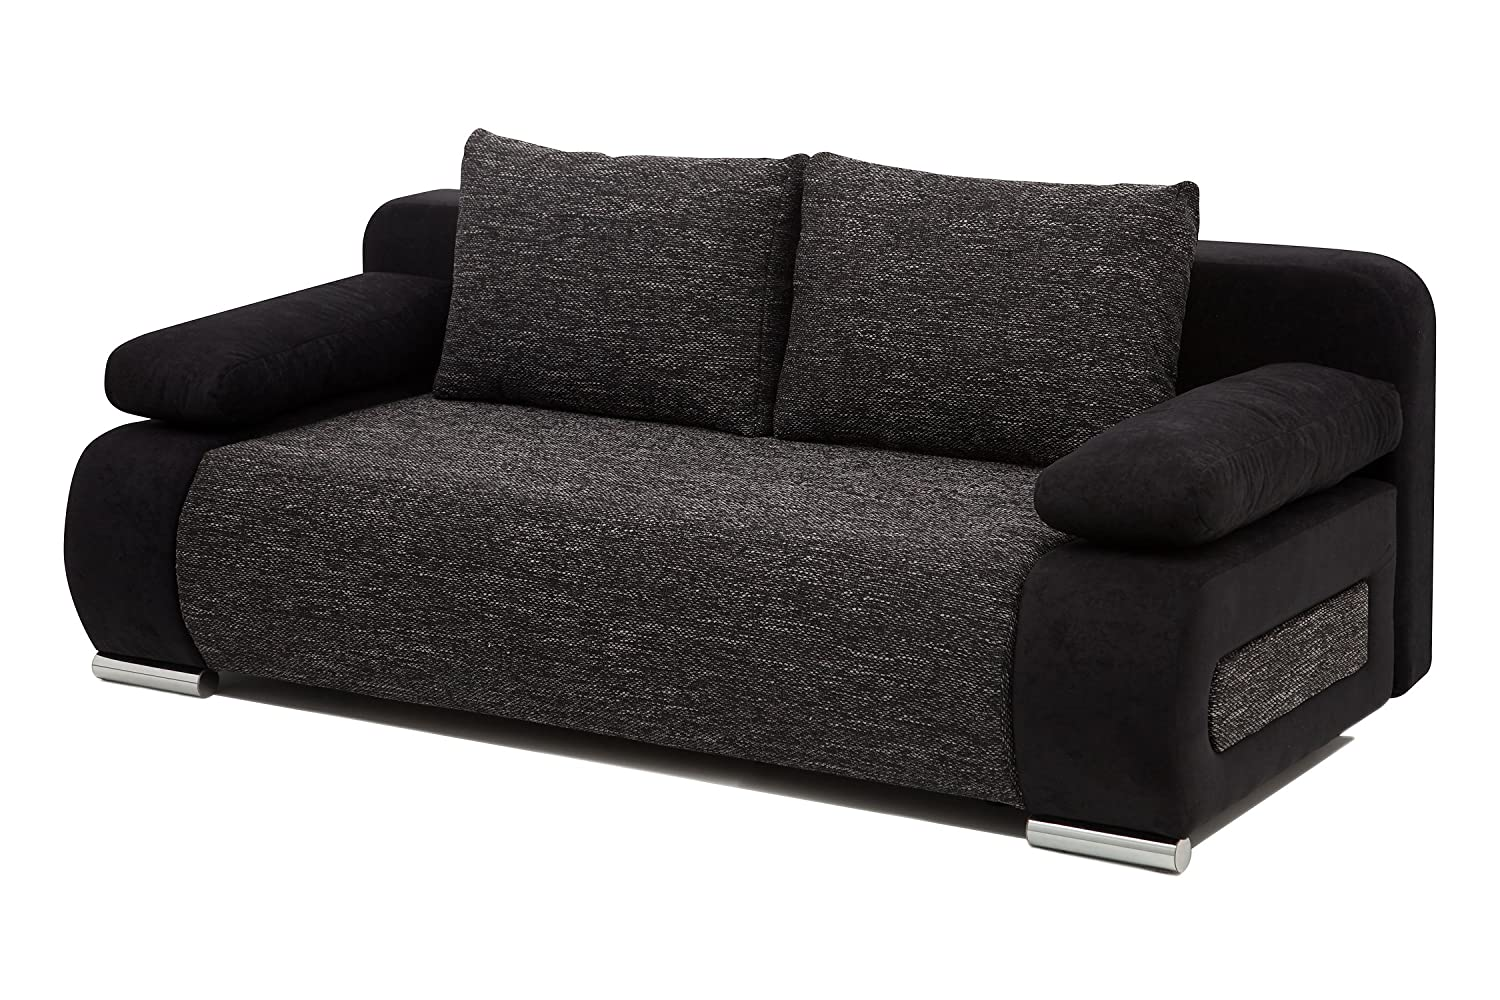 schlafsofa mit federkern bestseller shop f r m bel und einrichtungen. Black Bedroom Furniture Sets. Home Design Ideas